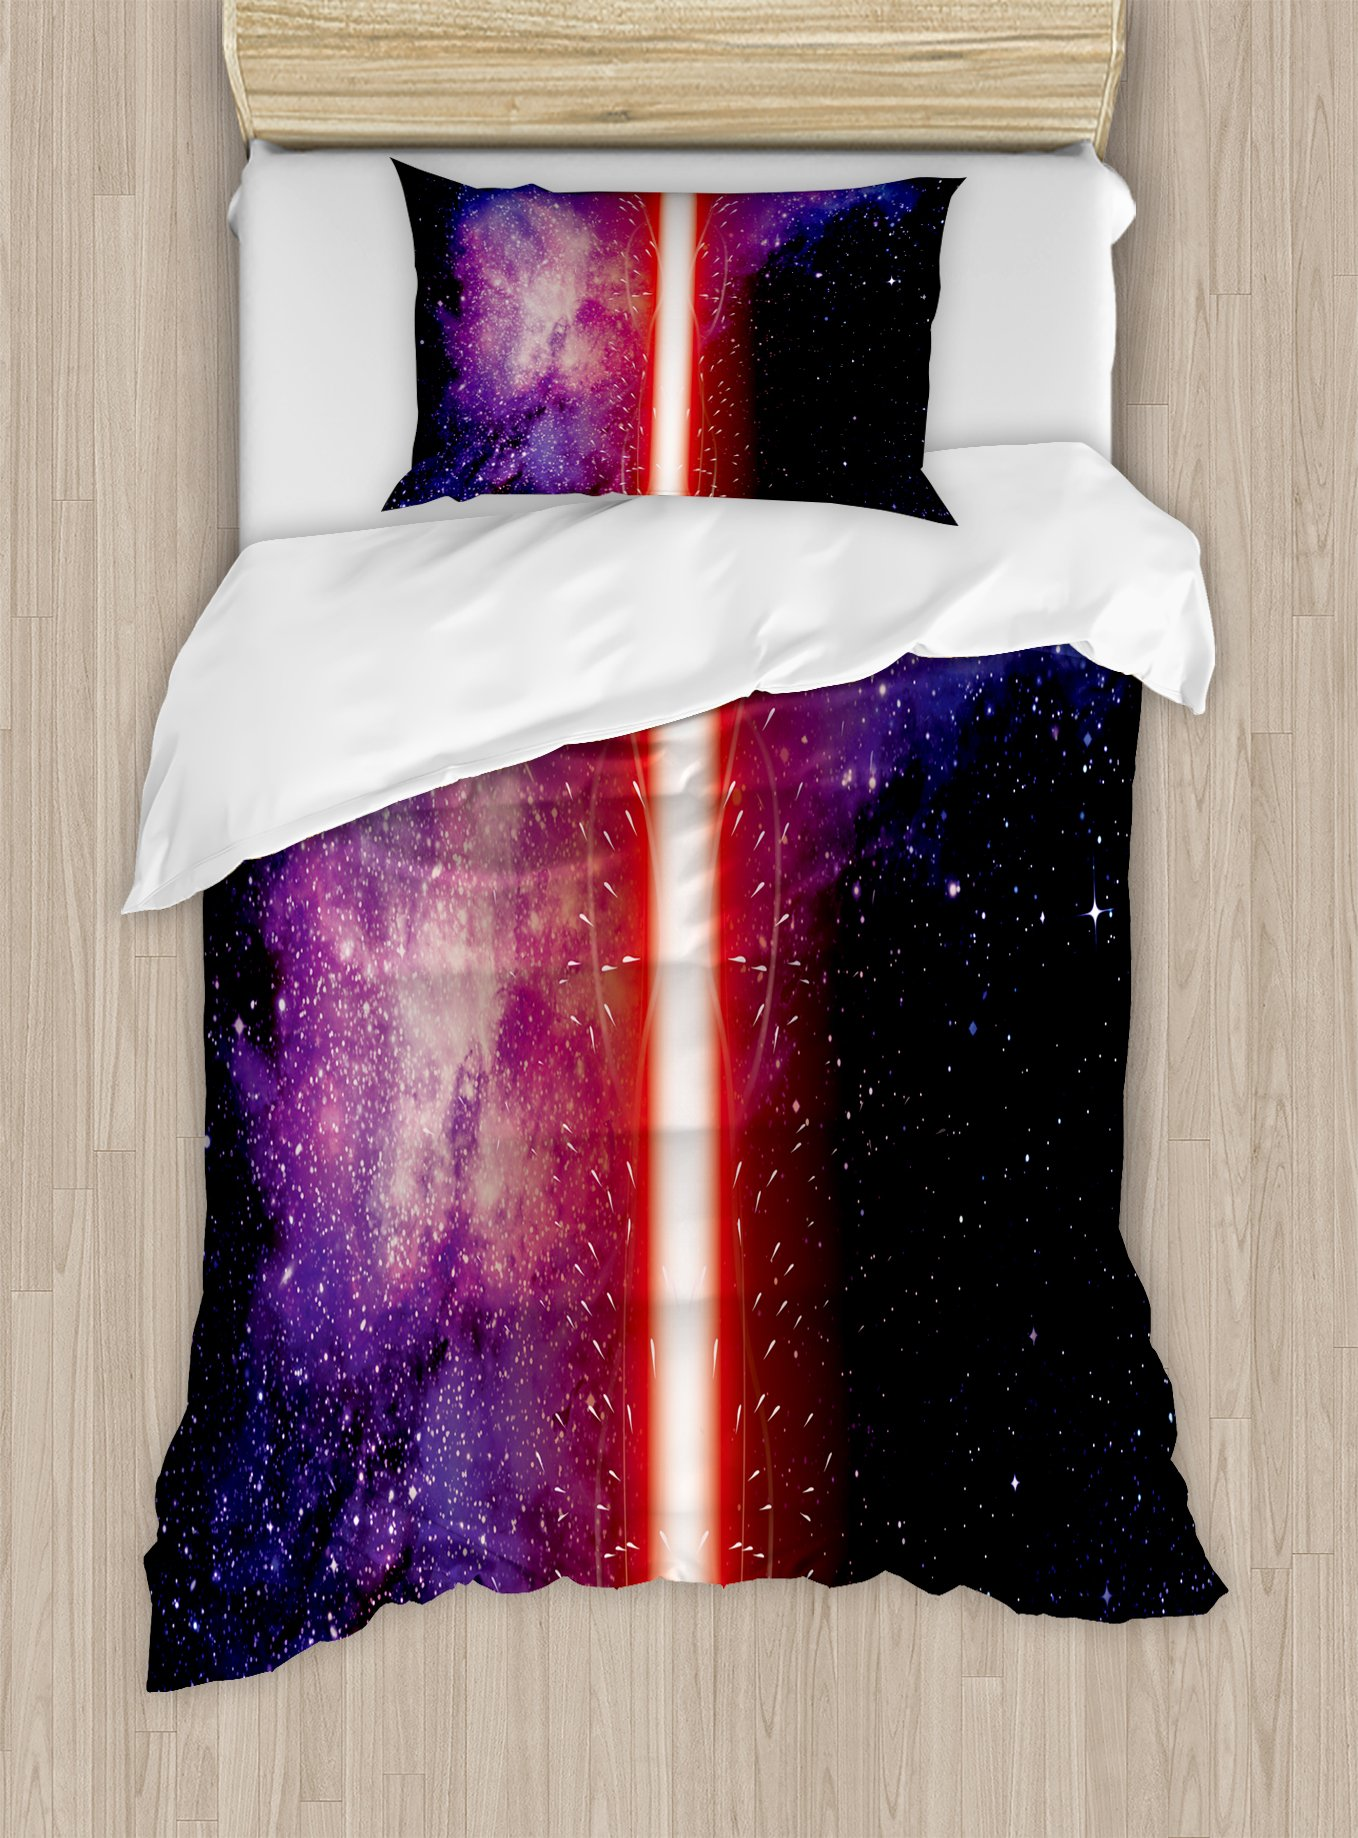 Ambesonne Galaxy Duvet Cover Set Twin Size, Famous Movie Prop Fantastic Galaxy Theme Between Enemies Theme Stripe Illustration in Red, Decorative 2 Piece Bedding Set with 1 Pillow Sham, Black